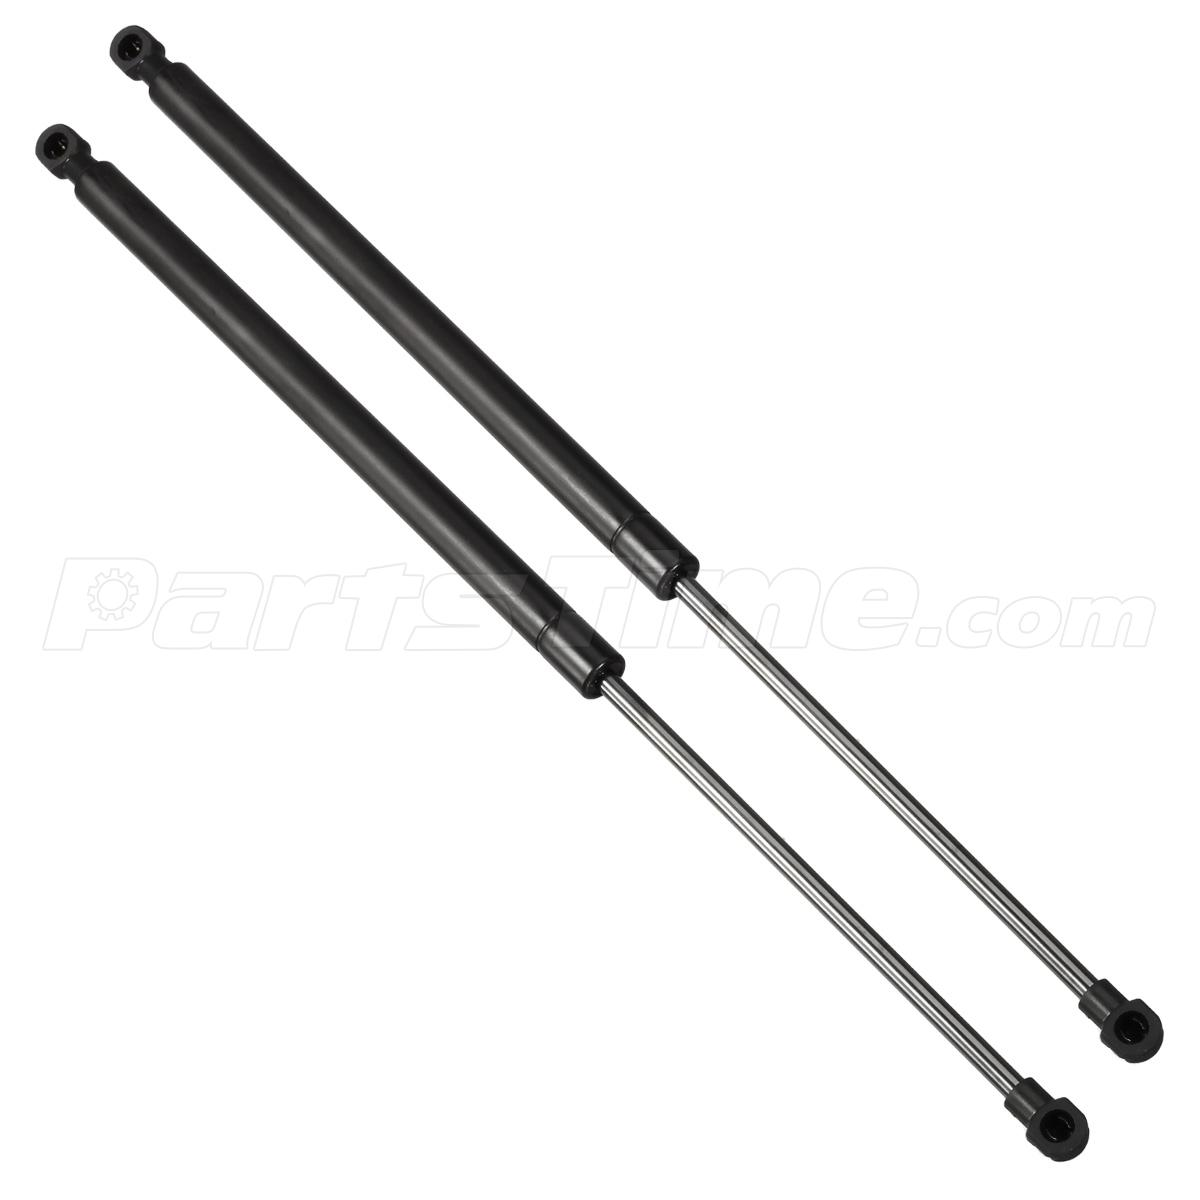 Qty 2 Hood Pm Lift Supports Prop Rod Shock Gas Spring